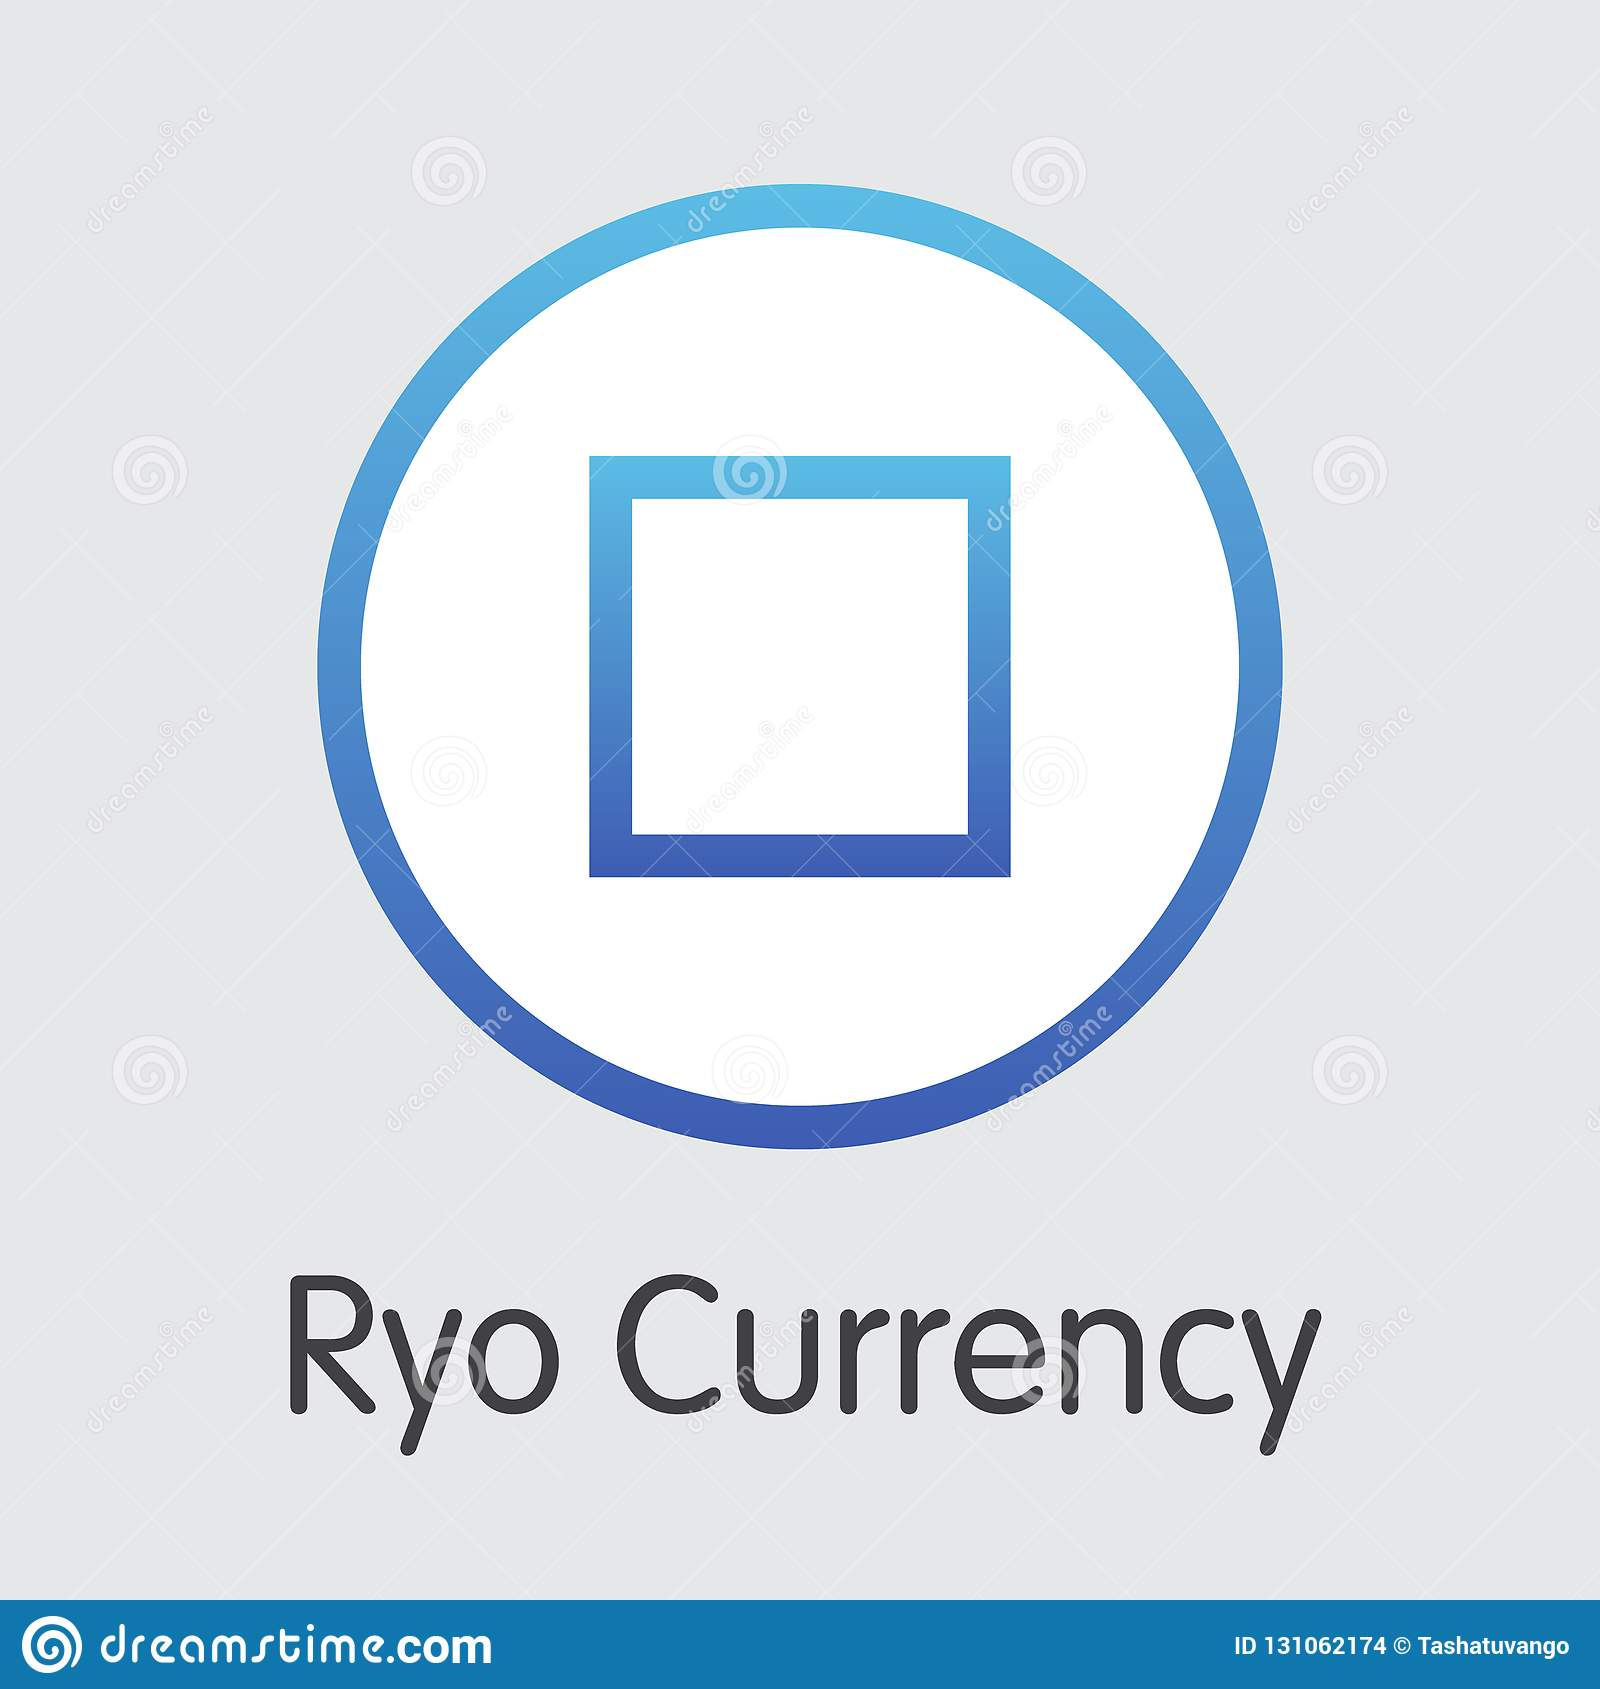 Ryo Currency - pictograma de Blockchain Cryptocurrency Engrana el icono